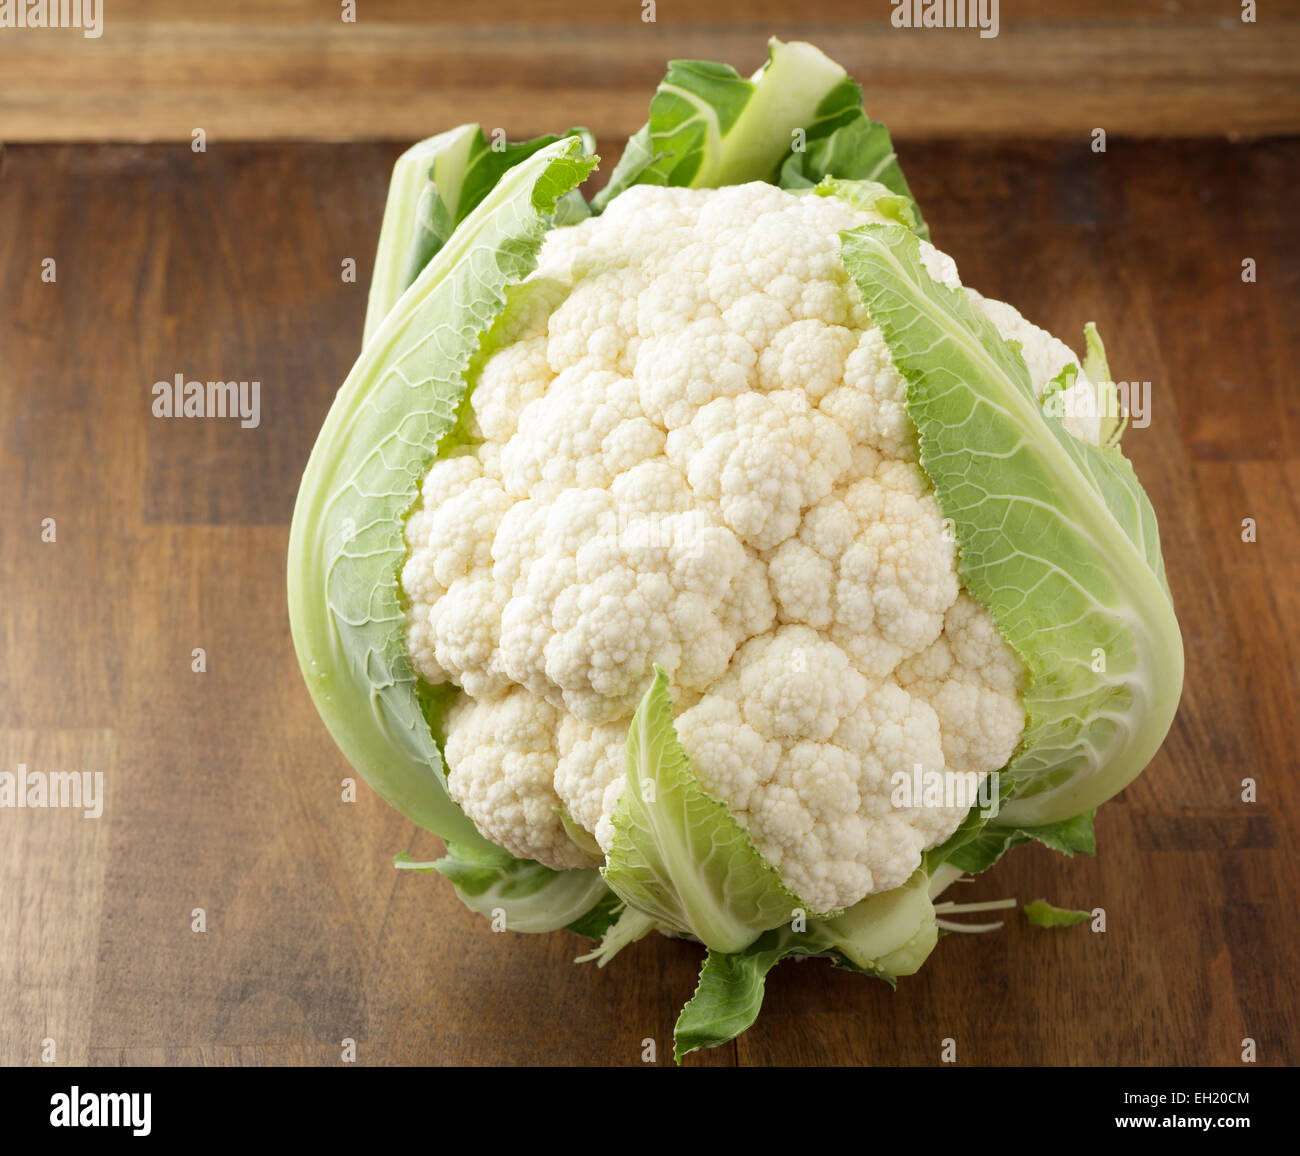 whole cauliflower on wooden table - Stock Image